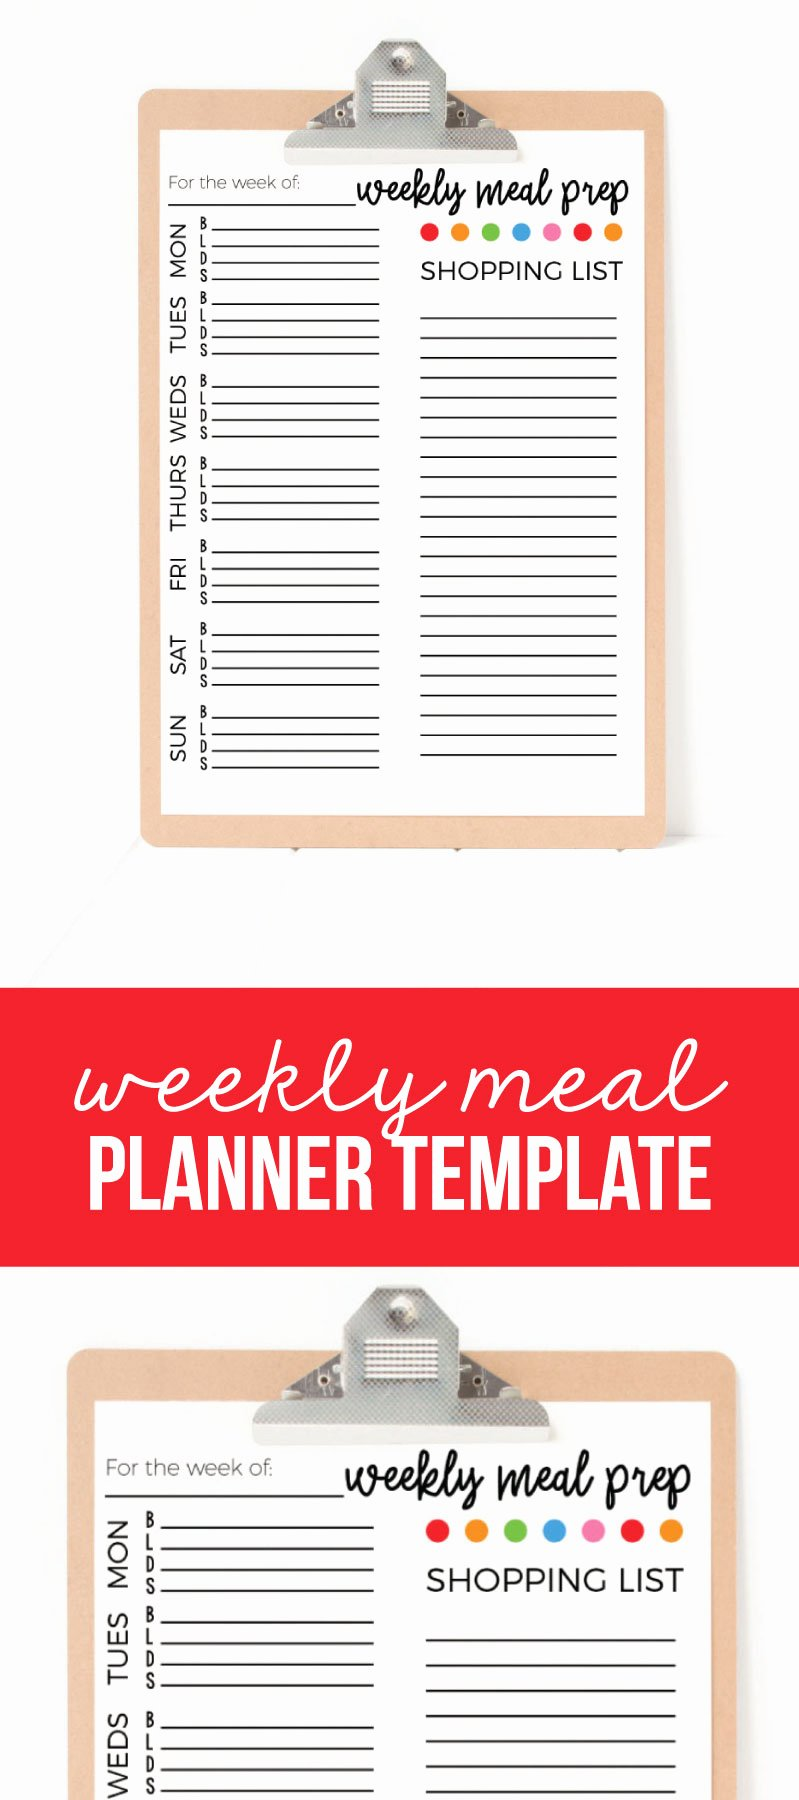 Custom Day Planner Template Best Of Weekly Meal Plan Template